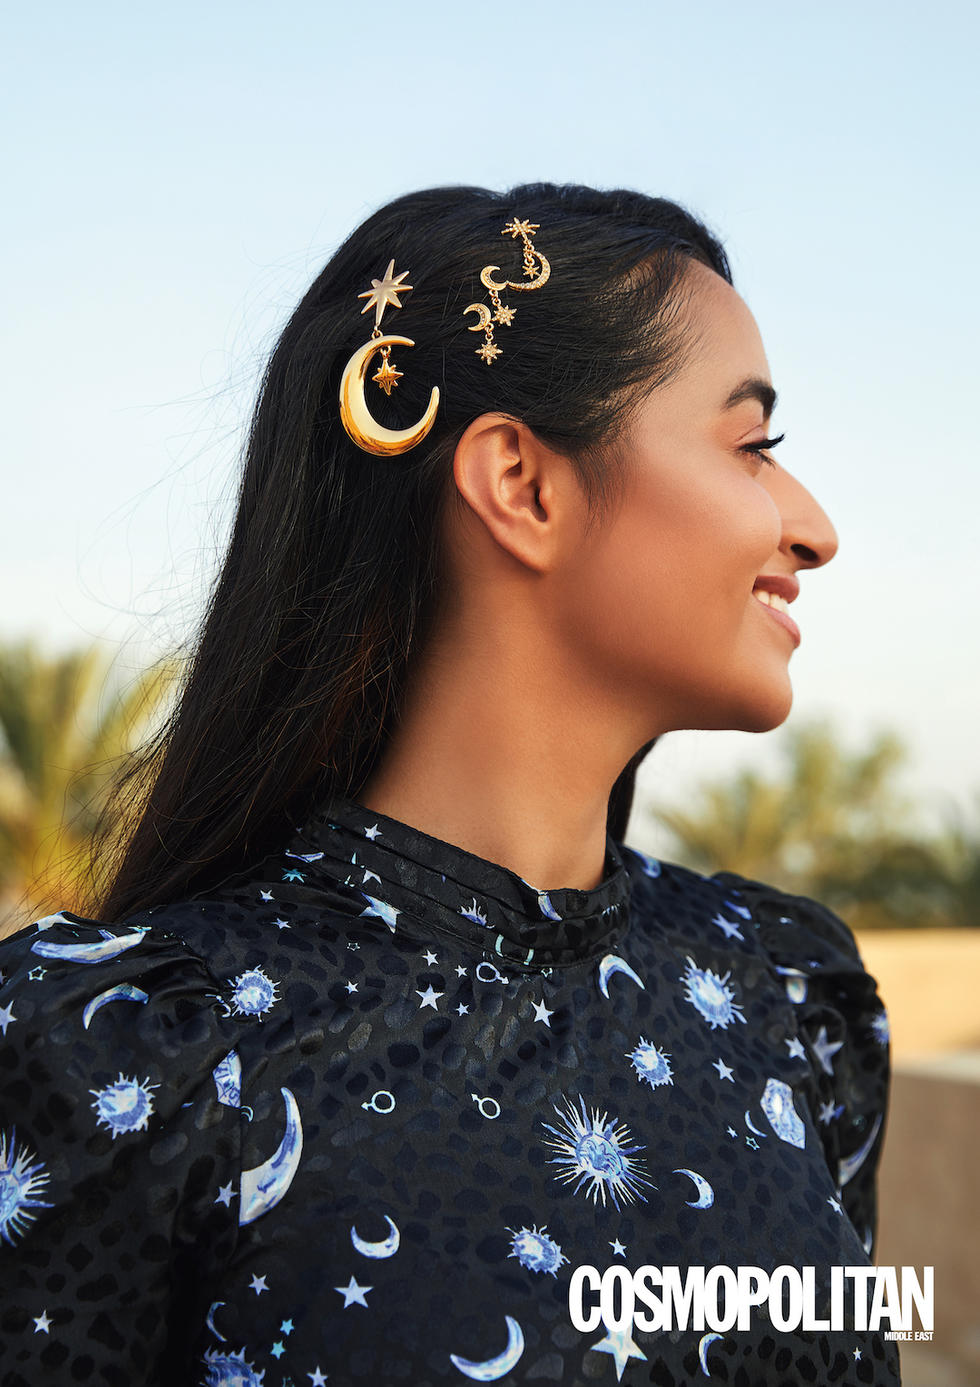 - Hair Accessories: Earring 1, Asos Design, Dhs35; Earring 2, Asos Design, Dhs35